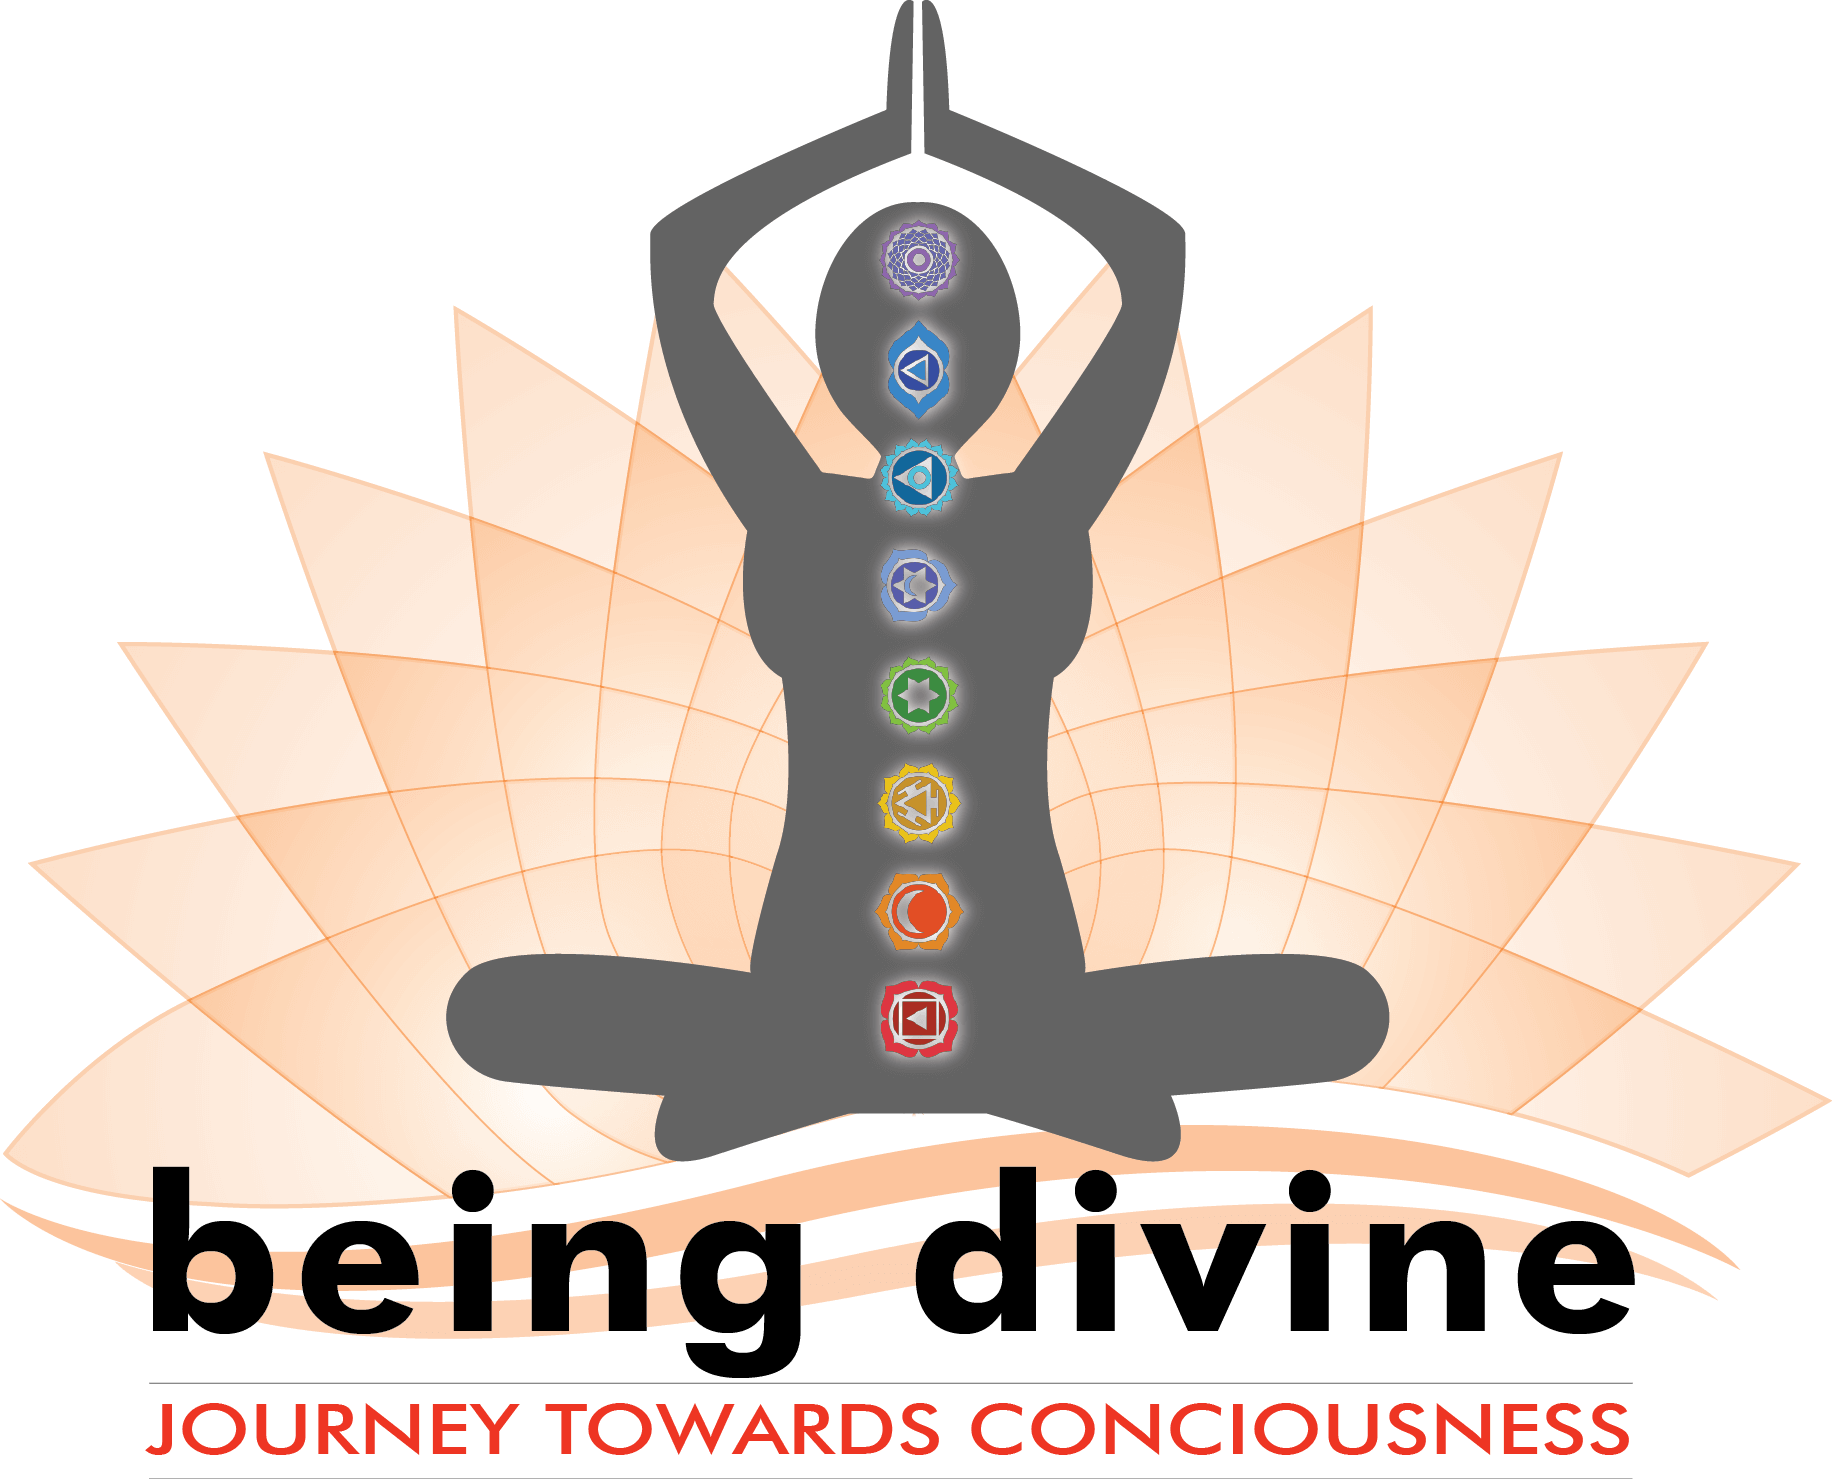 being divine - journey towards consciousness